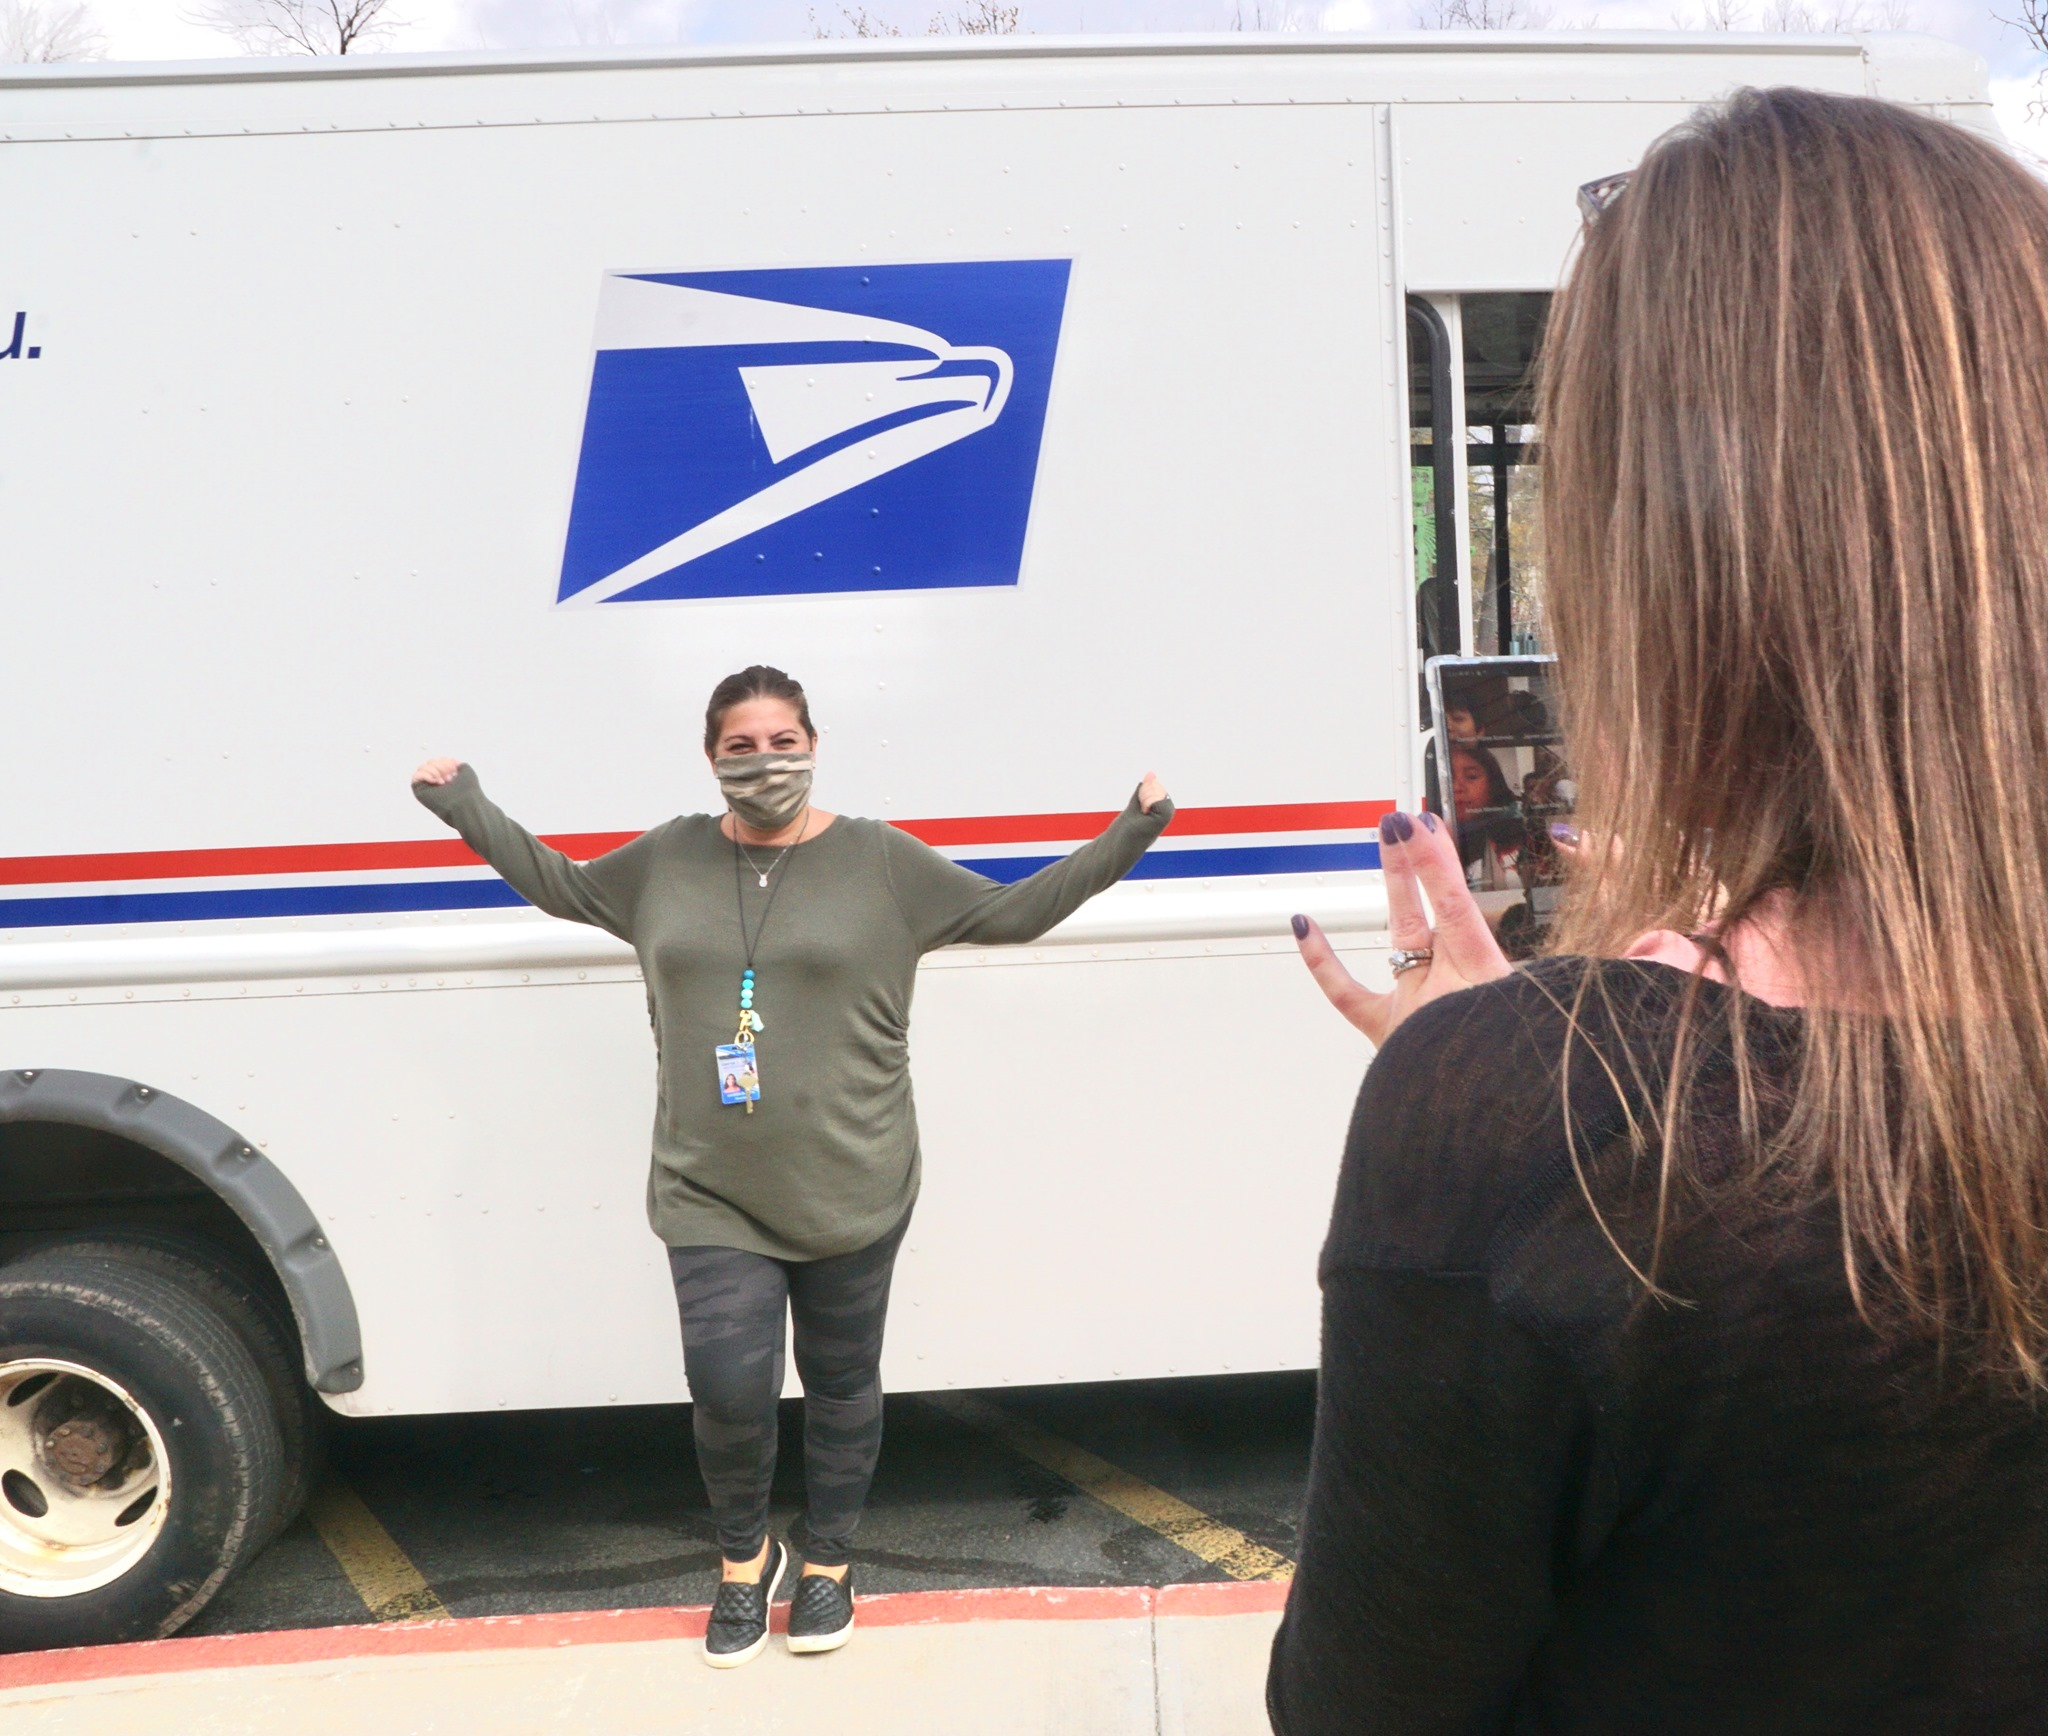 a teacher is filming a postal worker. The postal worker is standing beside a mail truck with her arms outstretched.